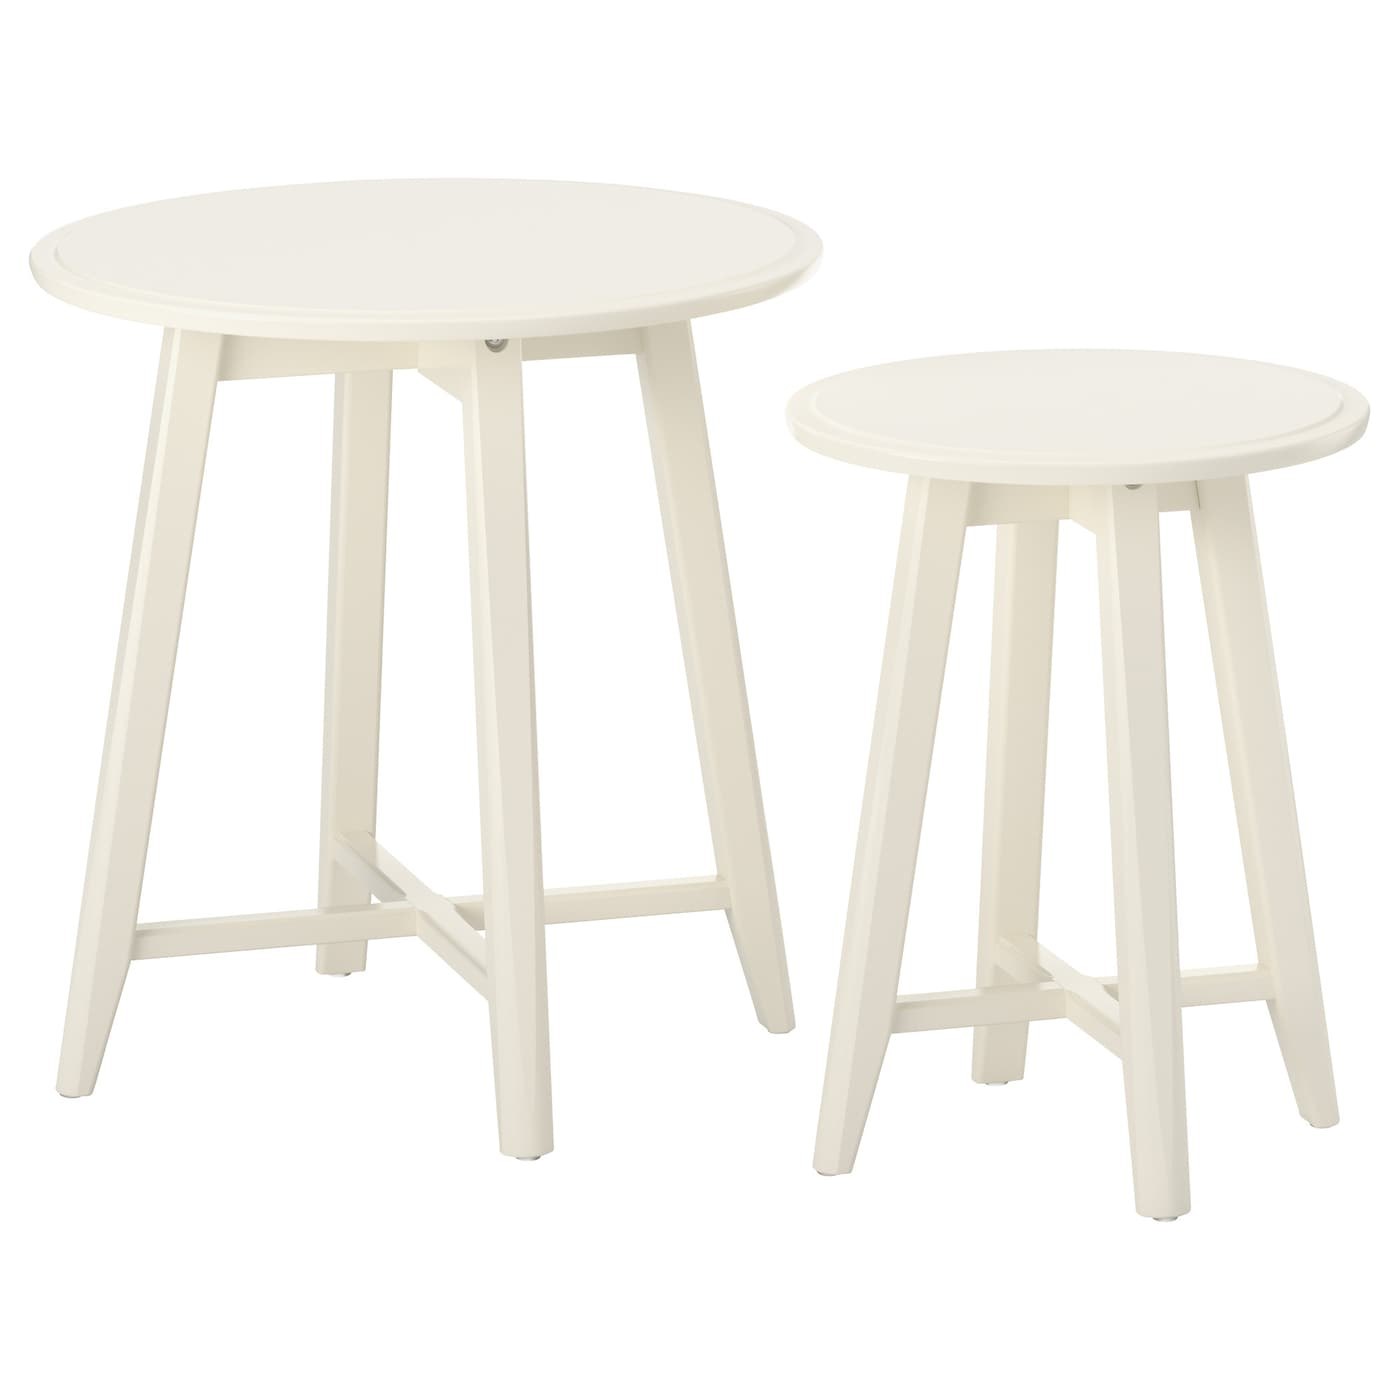 IKEA KRAGSTA Nest Of Tables, Set Of 2 The Included Plastic Feet Protect The  Floor